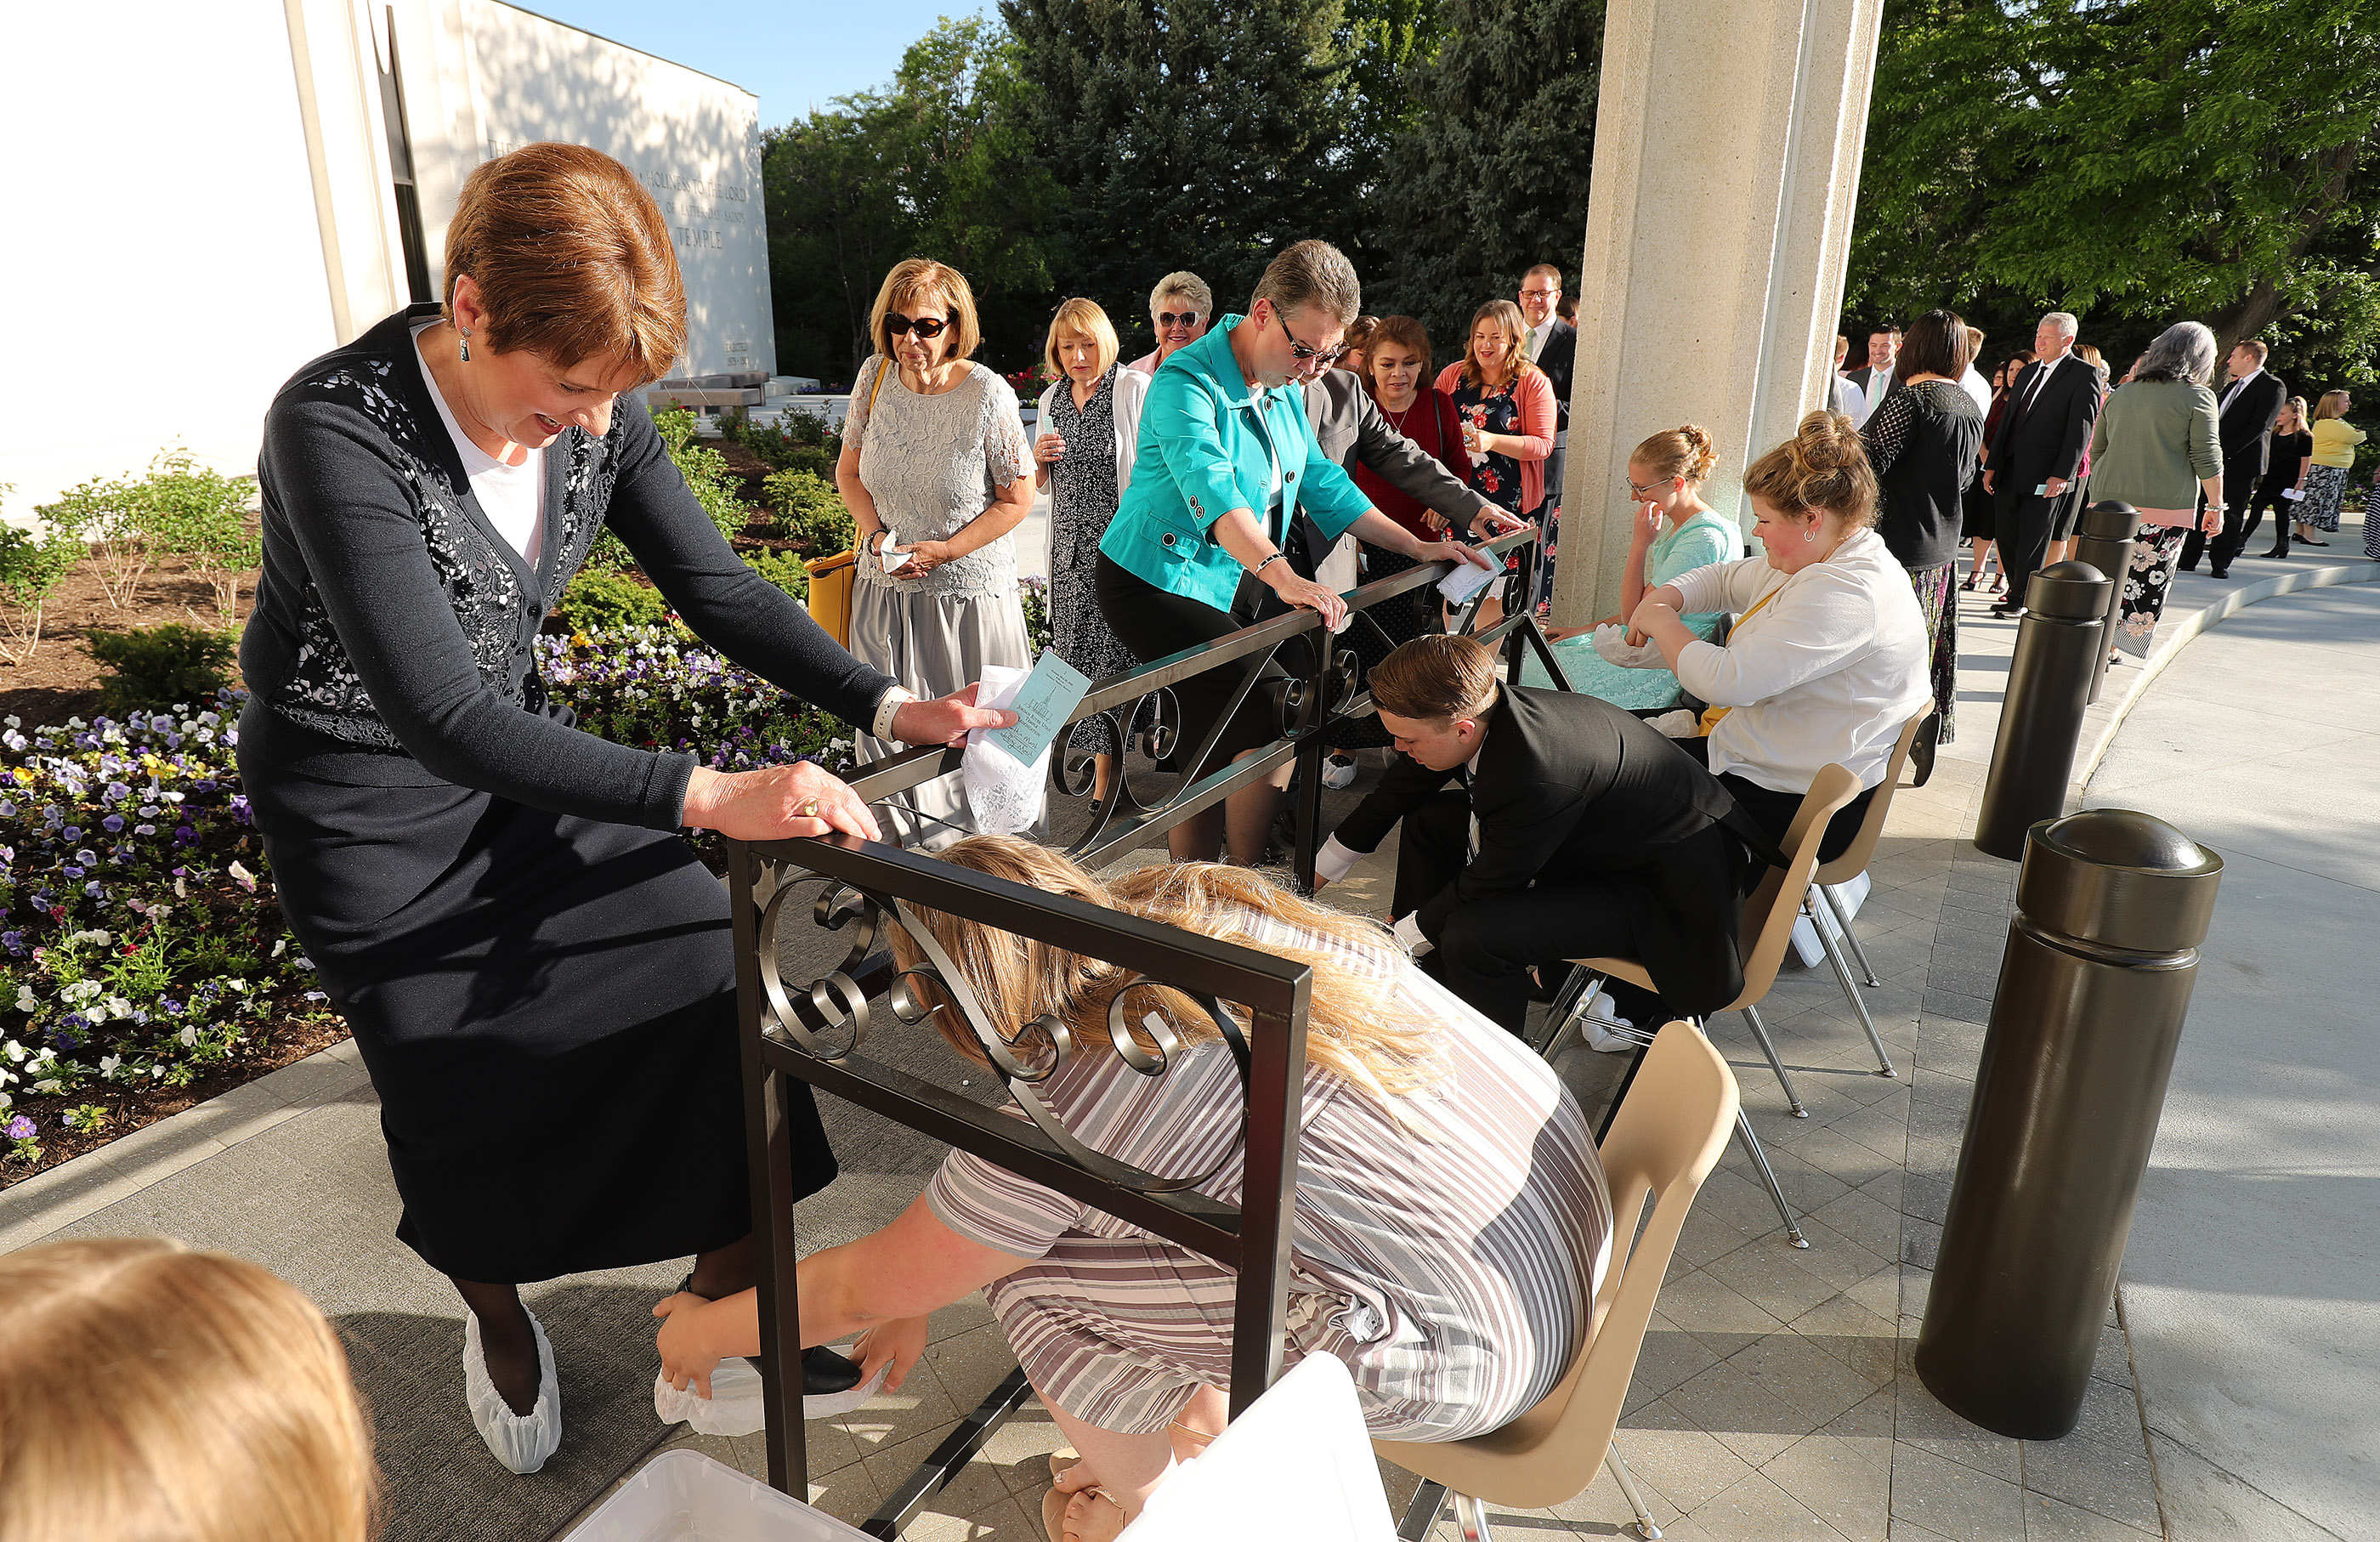 Attendees are booted as they arrive for the Jordan River Utah Temple rededication in South Jordan on Sunday, May 20, 2018.